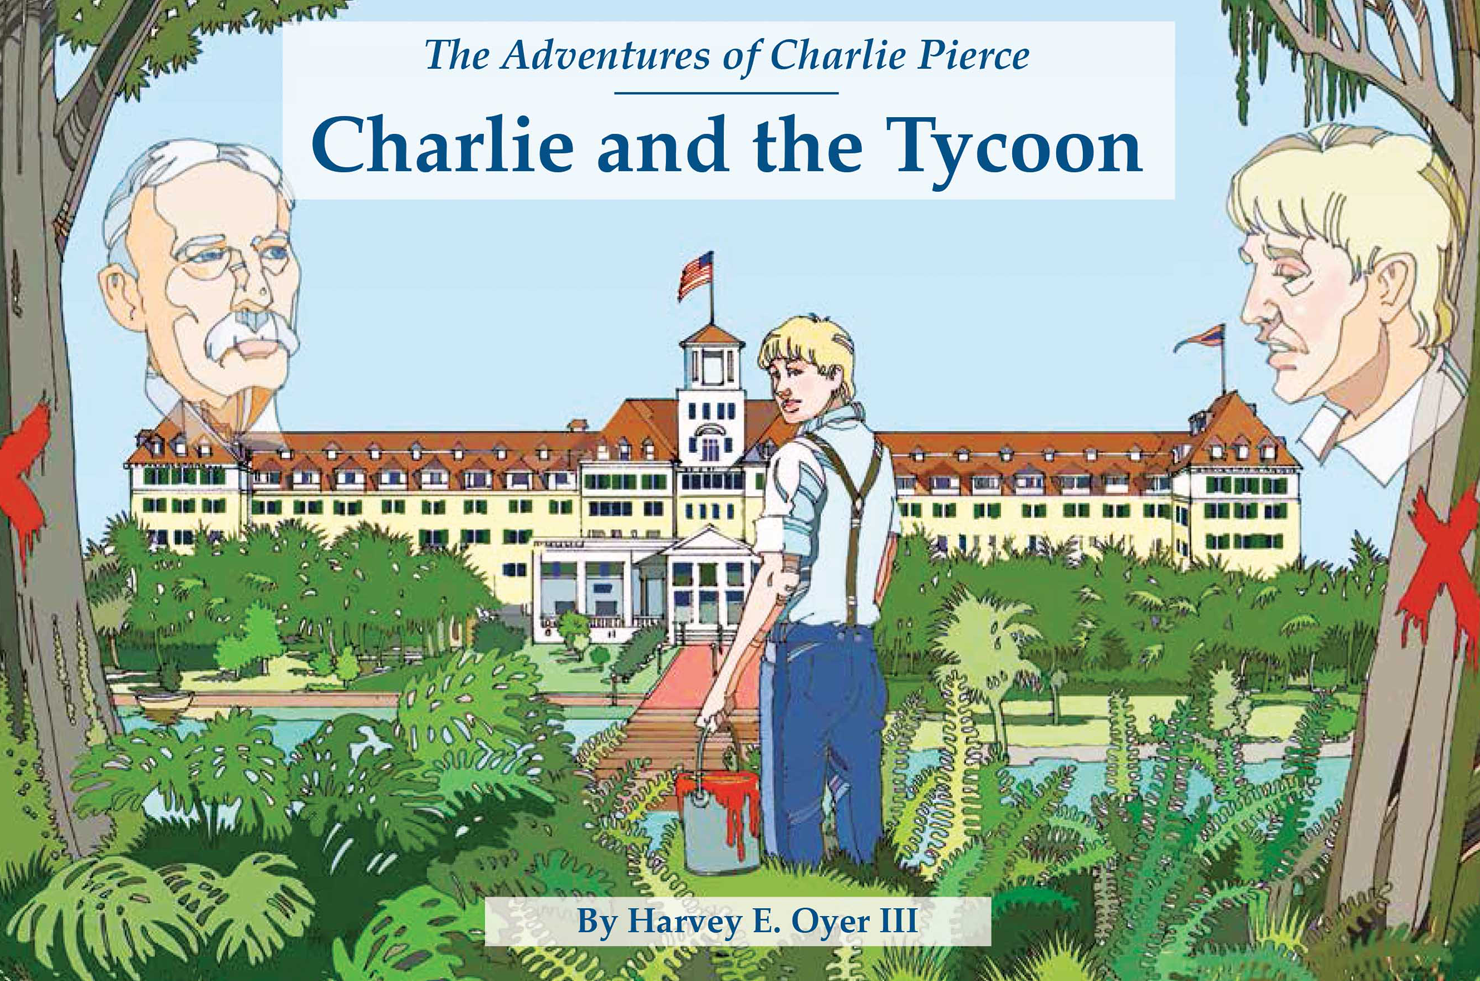 Charlie and the Tycoon